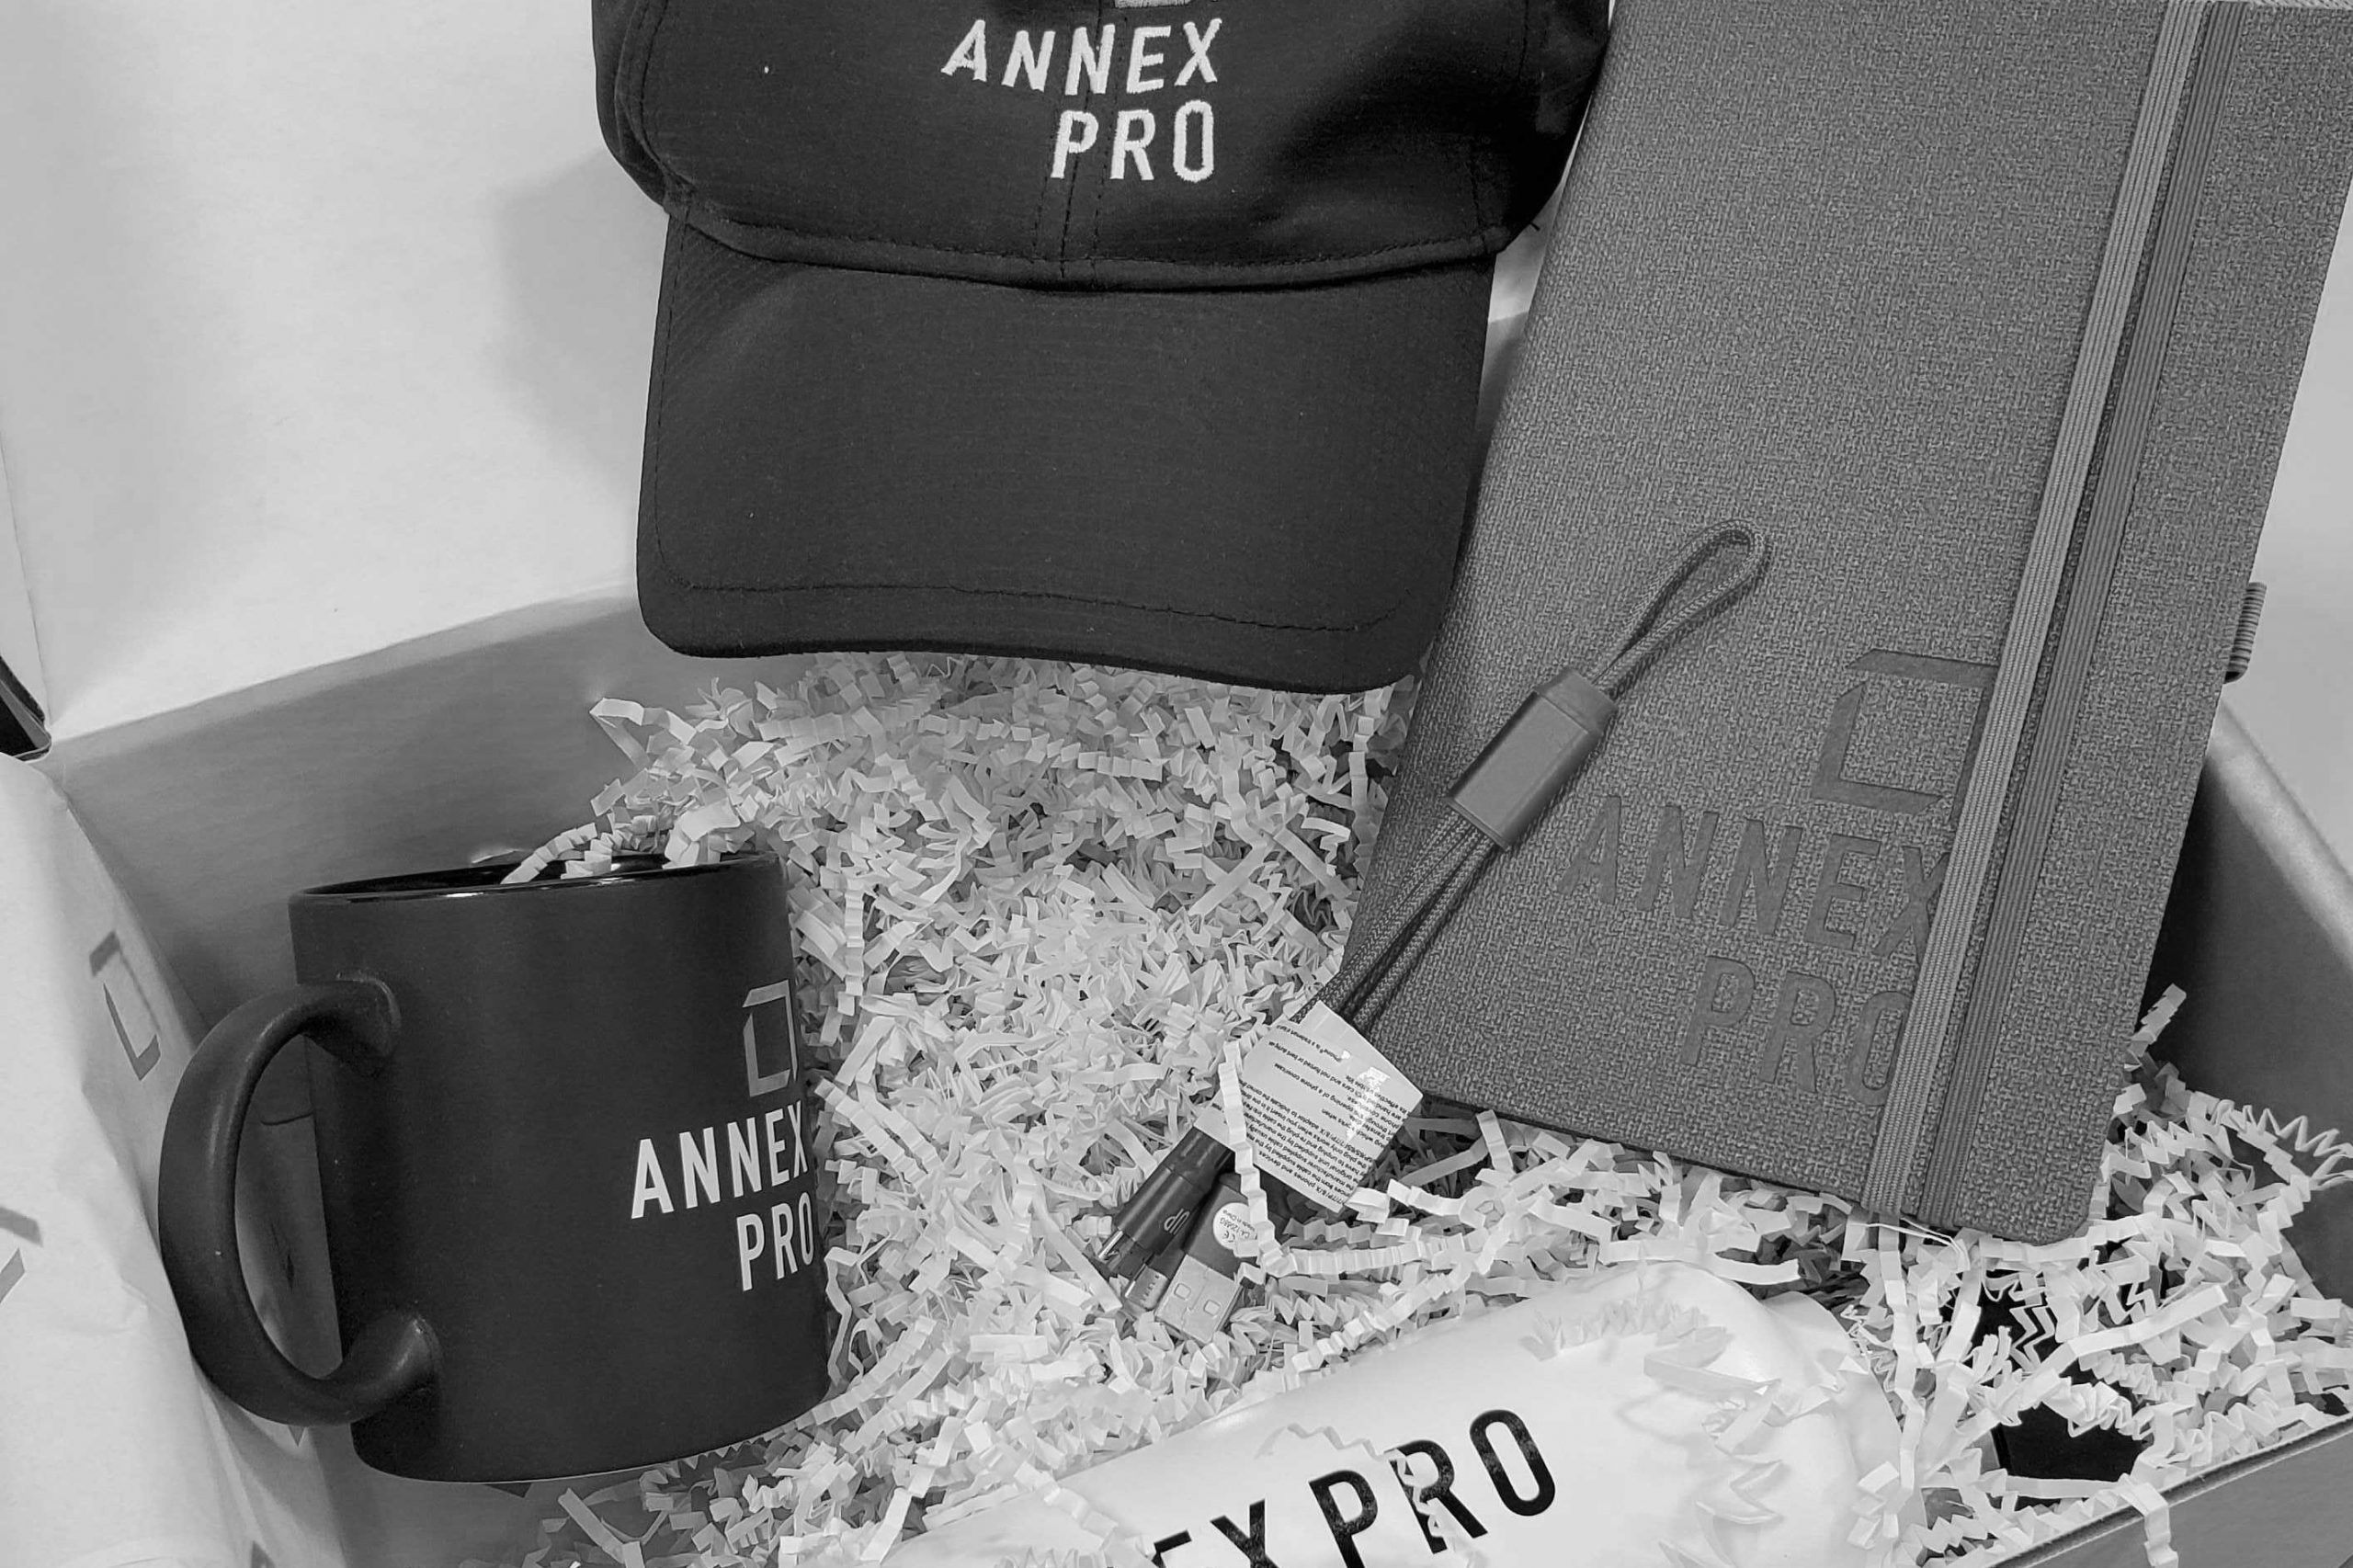 Photo of prize from Annex Pro included branded cap, notebook and water bottle